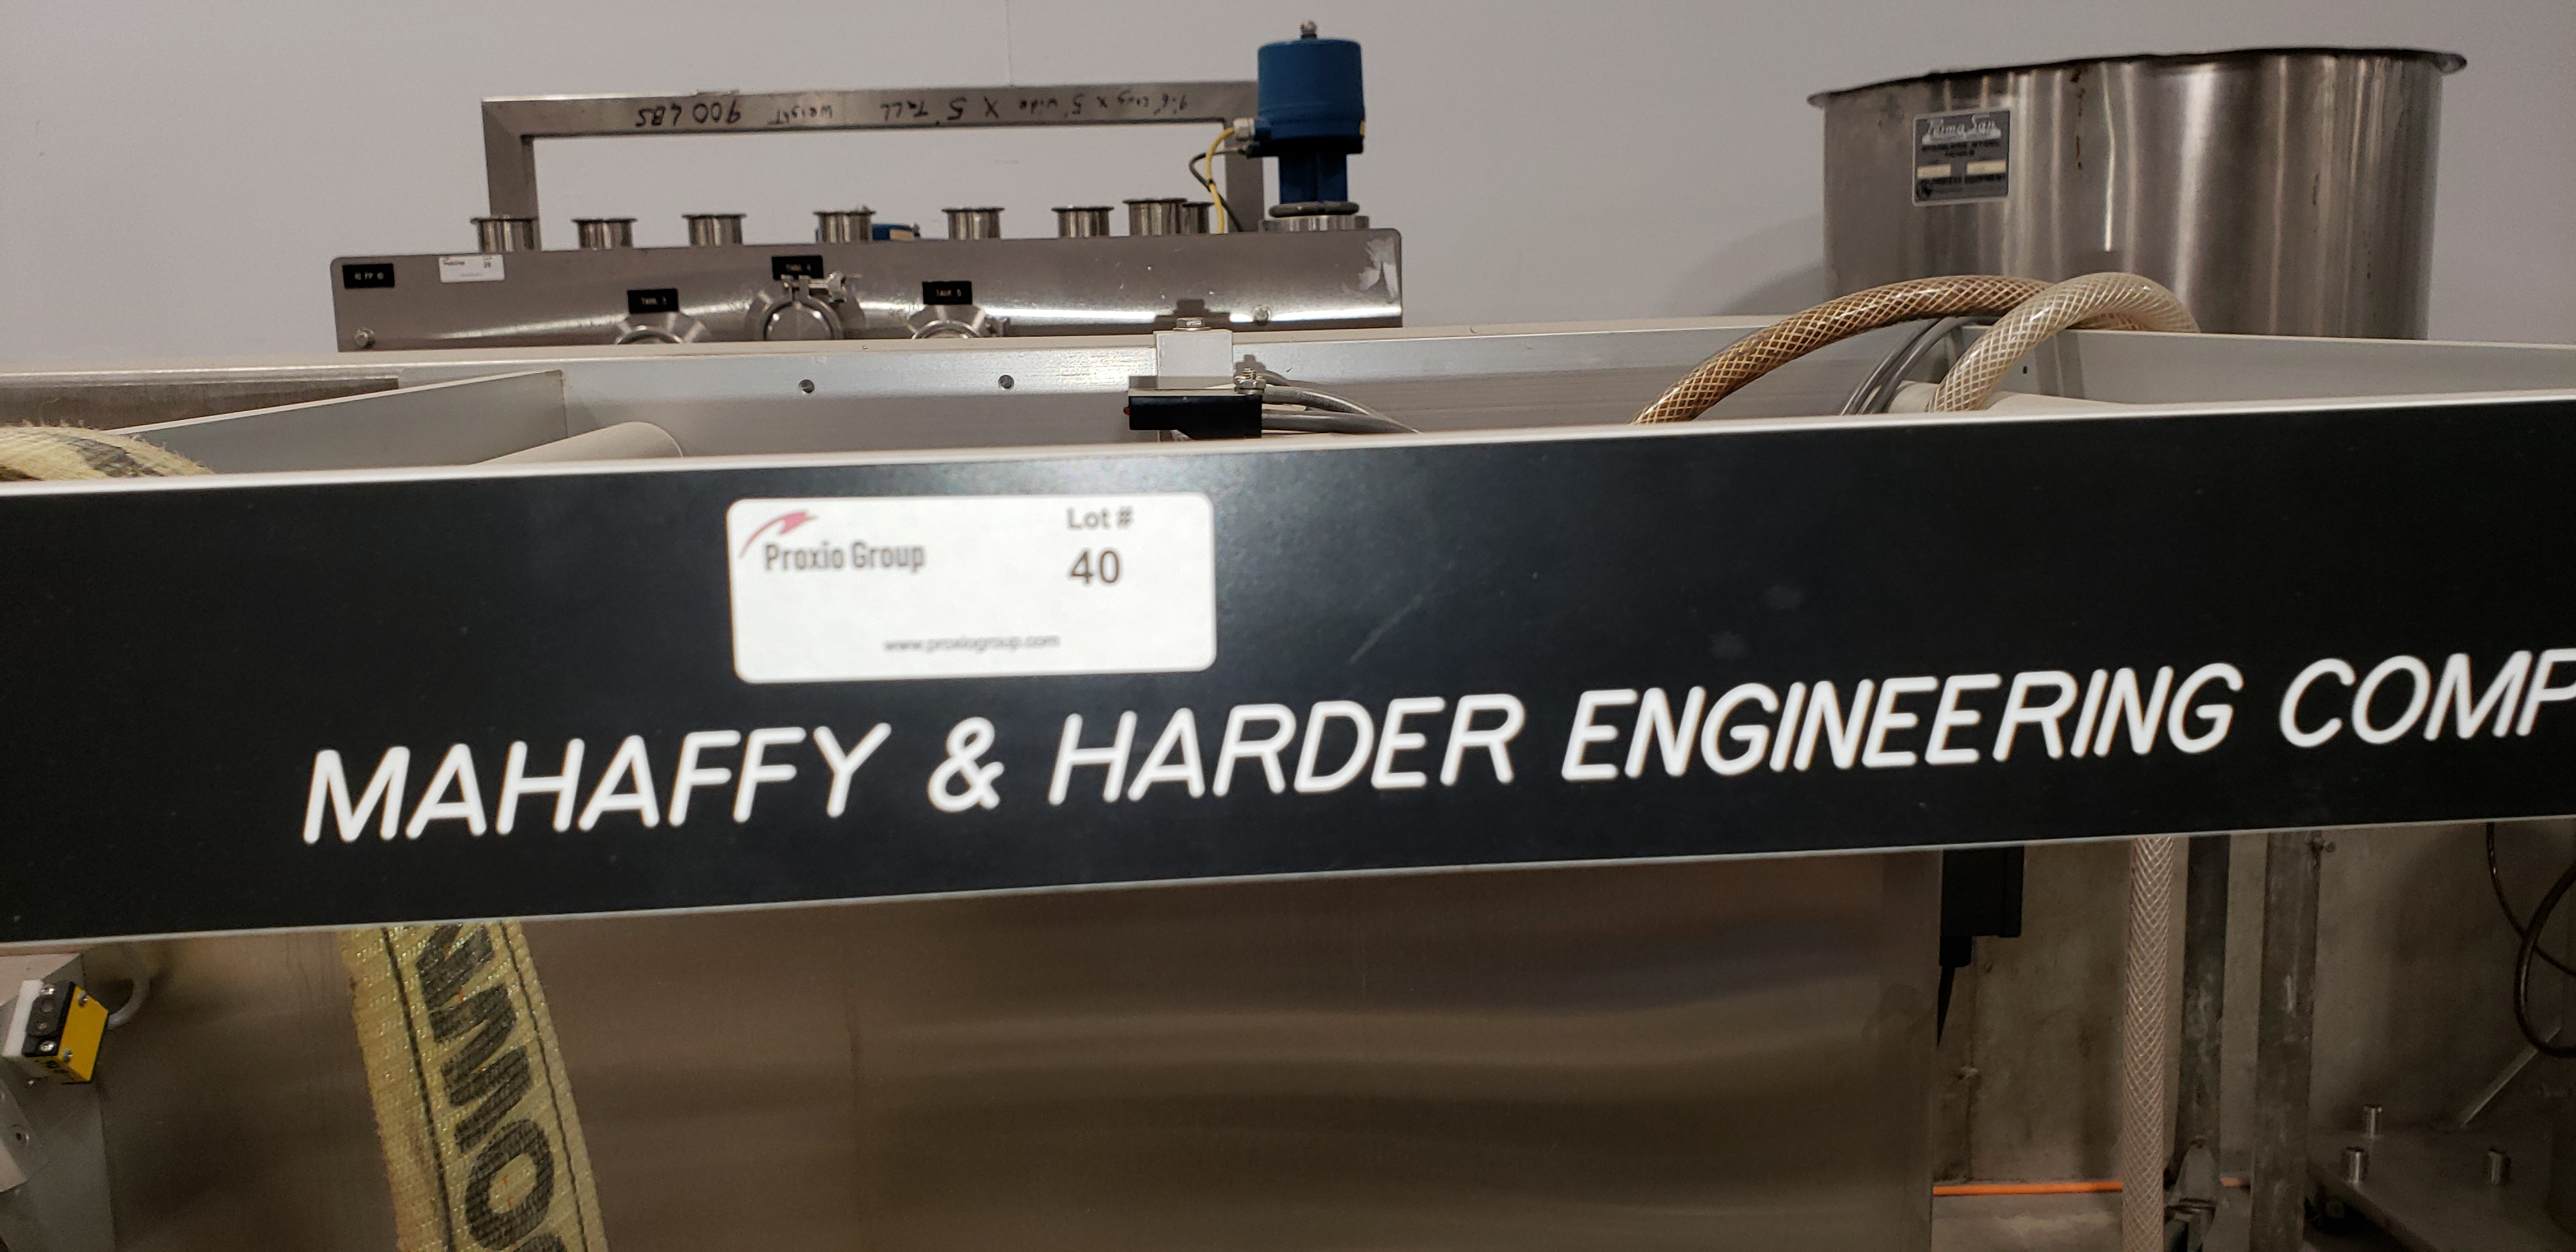 Mafaffy Horizontal Tray Former/Blister Sealer/Form Fill Seal Machine - Image 14 of 18